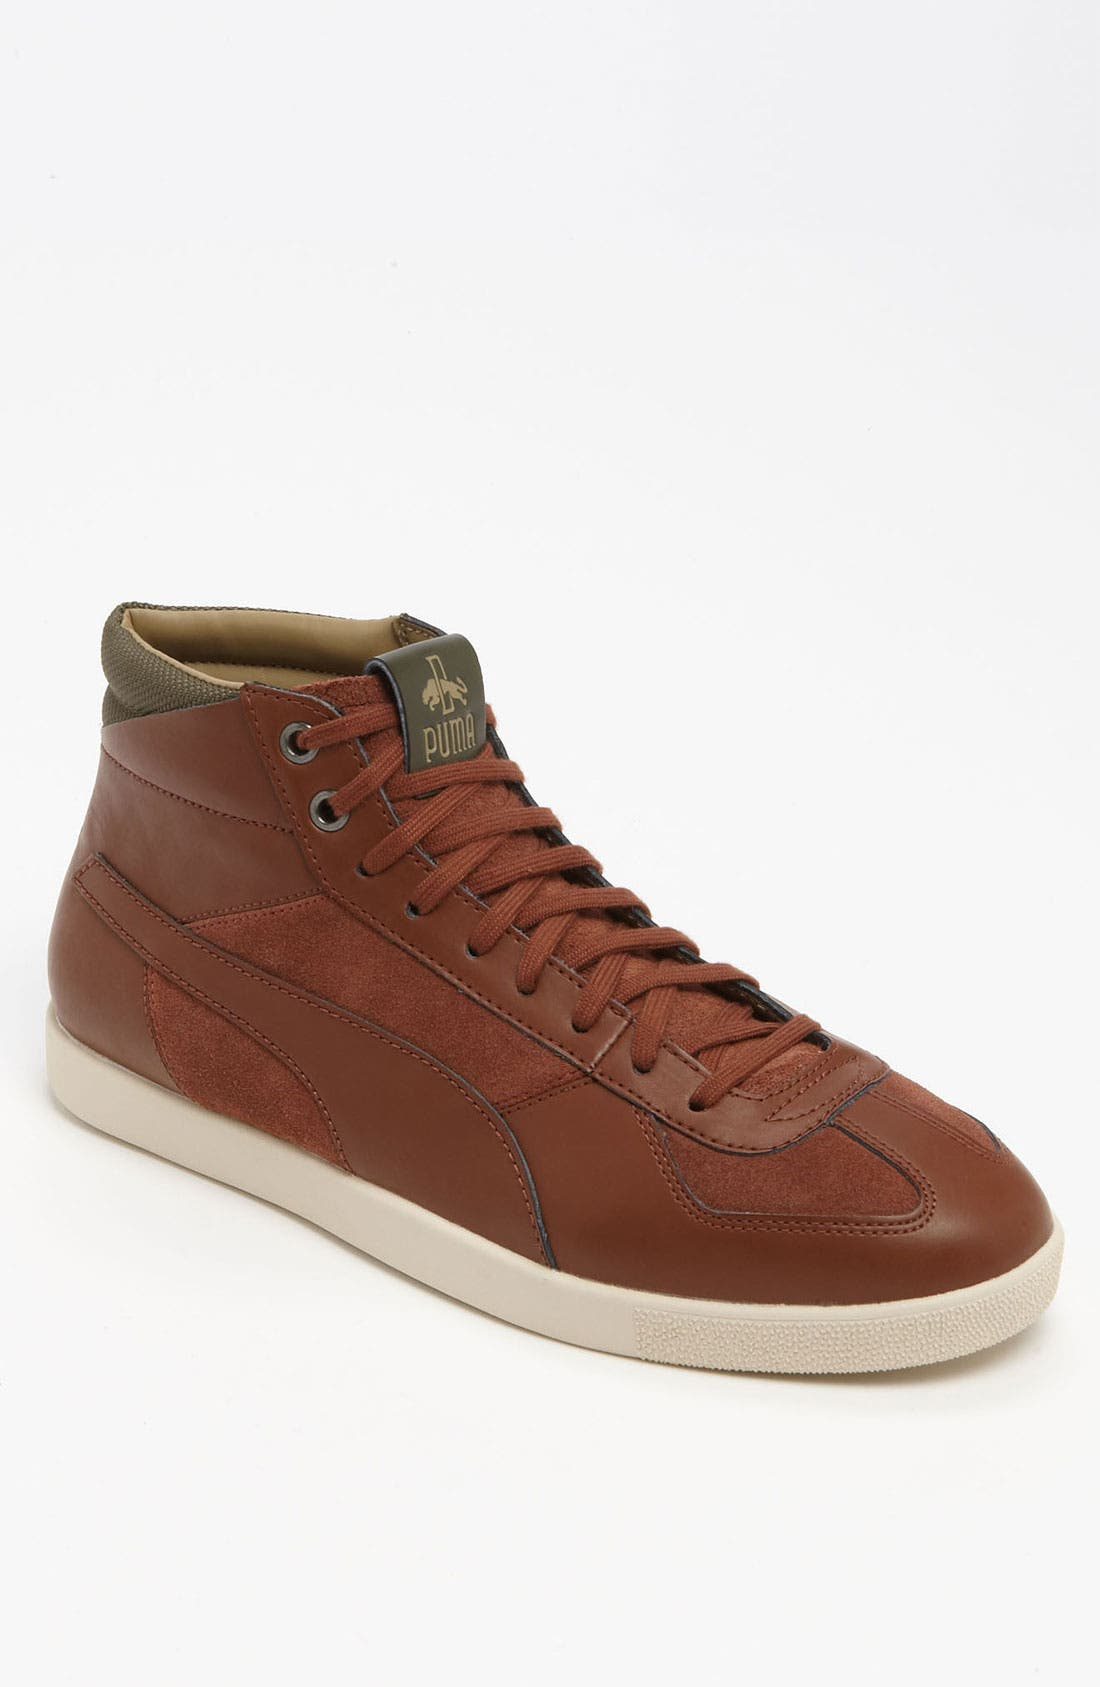 Main Image - PUMA 'Dassler - Ansbach Mid' Sneaker